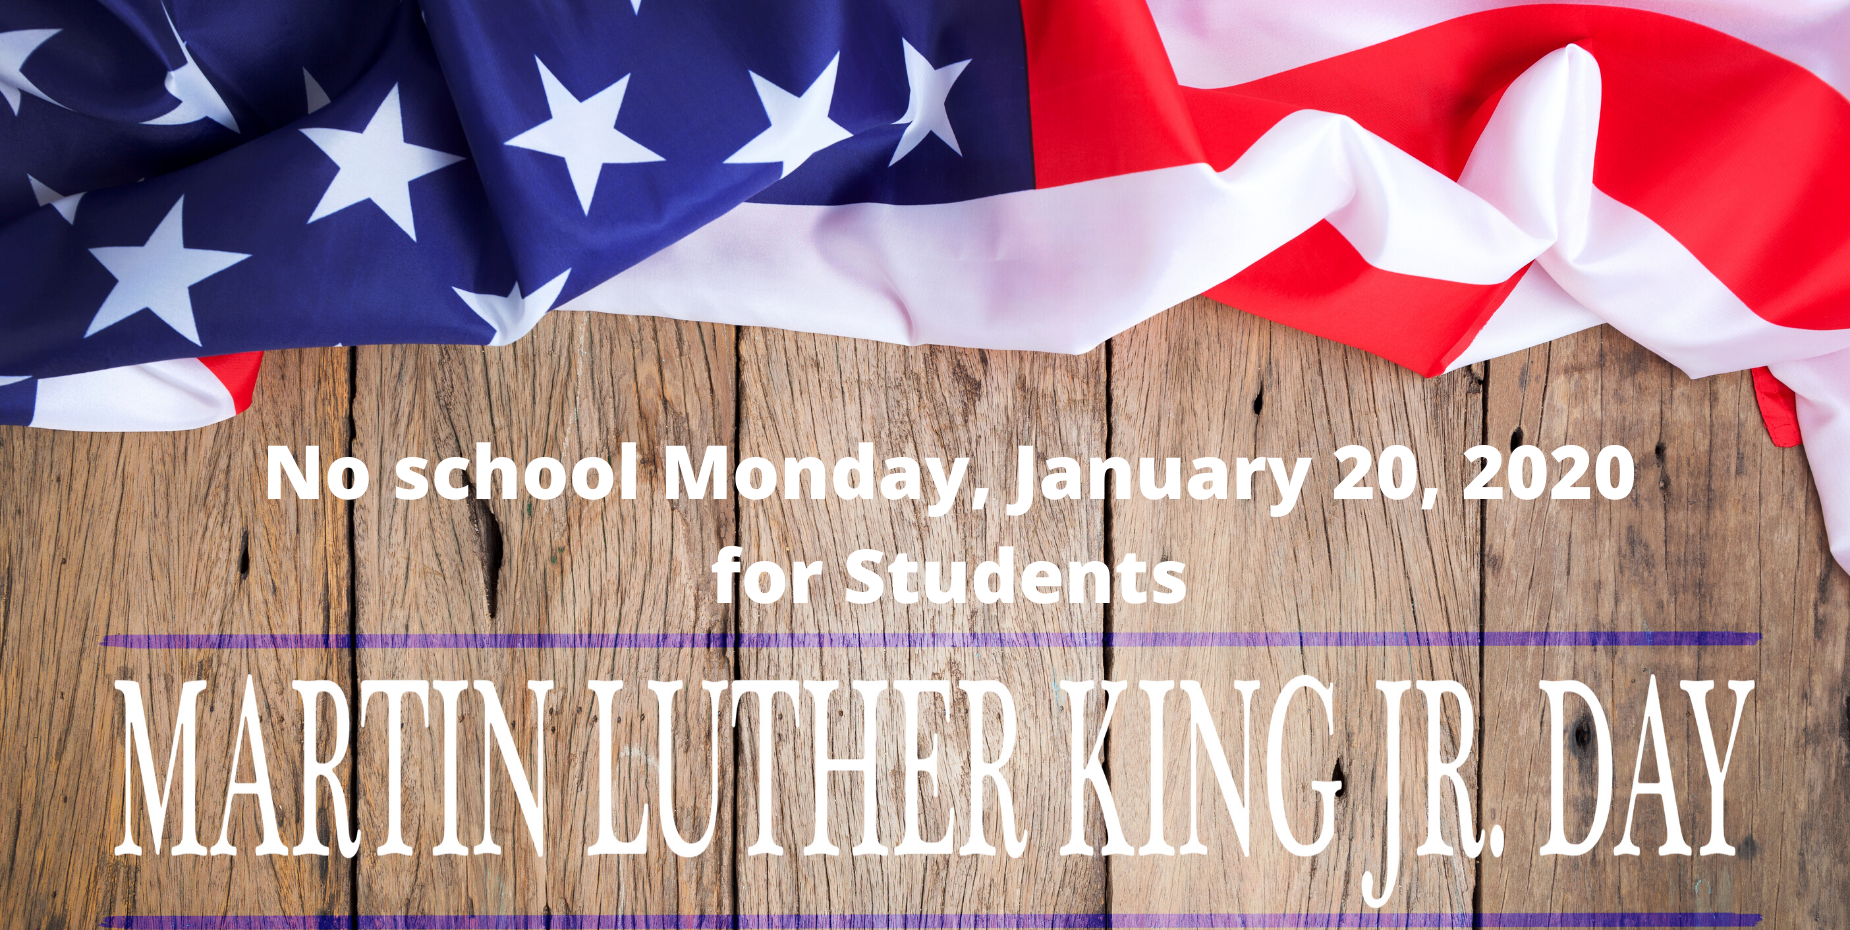 Image shows a flag on boards and information about MLK Jr. Day.